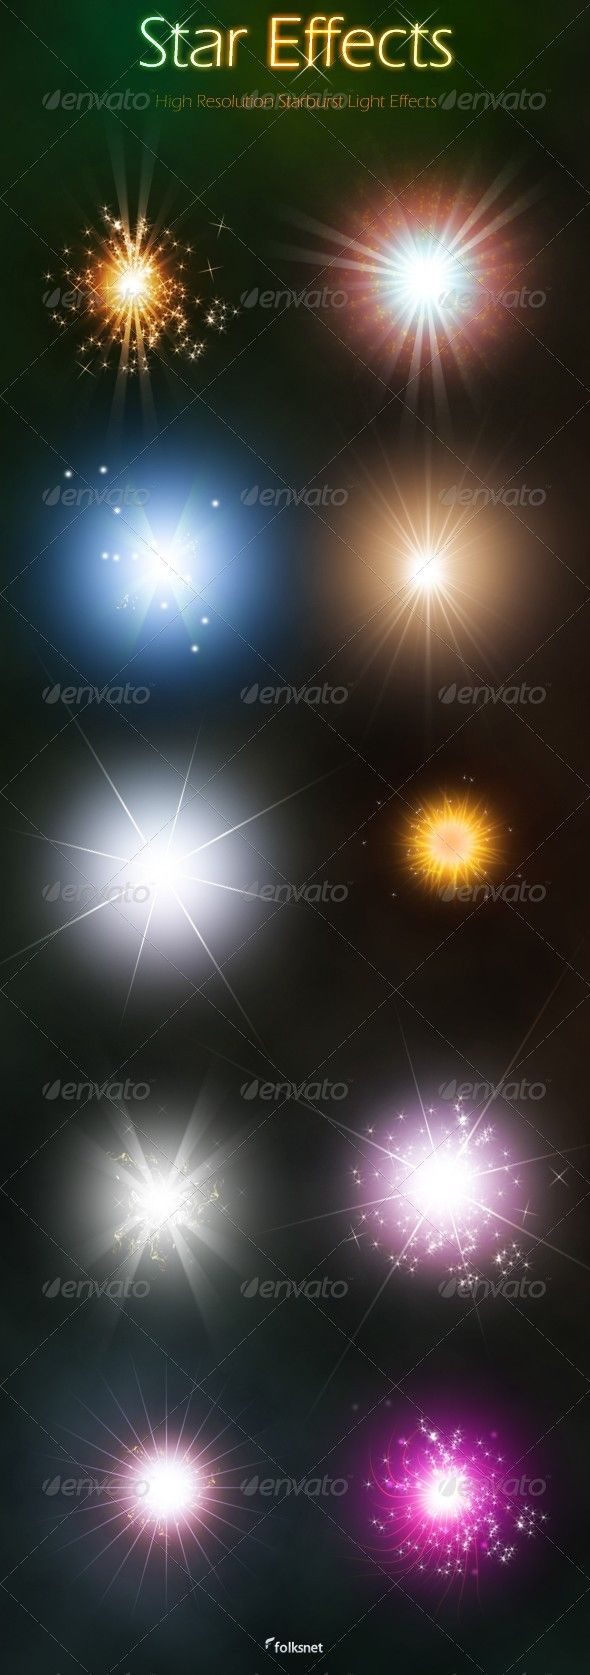 10 High resolution starburst light effects average size about 850px. Included 1 PSD file with 10 stars, each star is in separate folder and build with multiple layers, all layers can be edited, also included all 10 stars in png format.